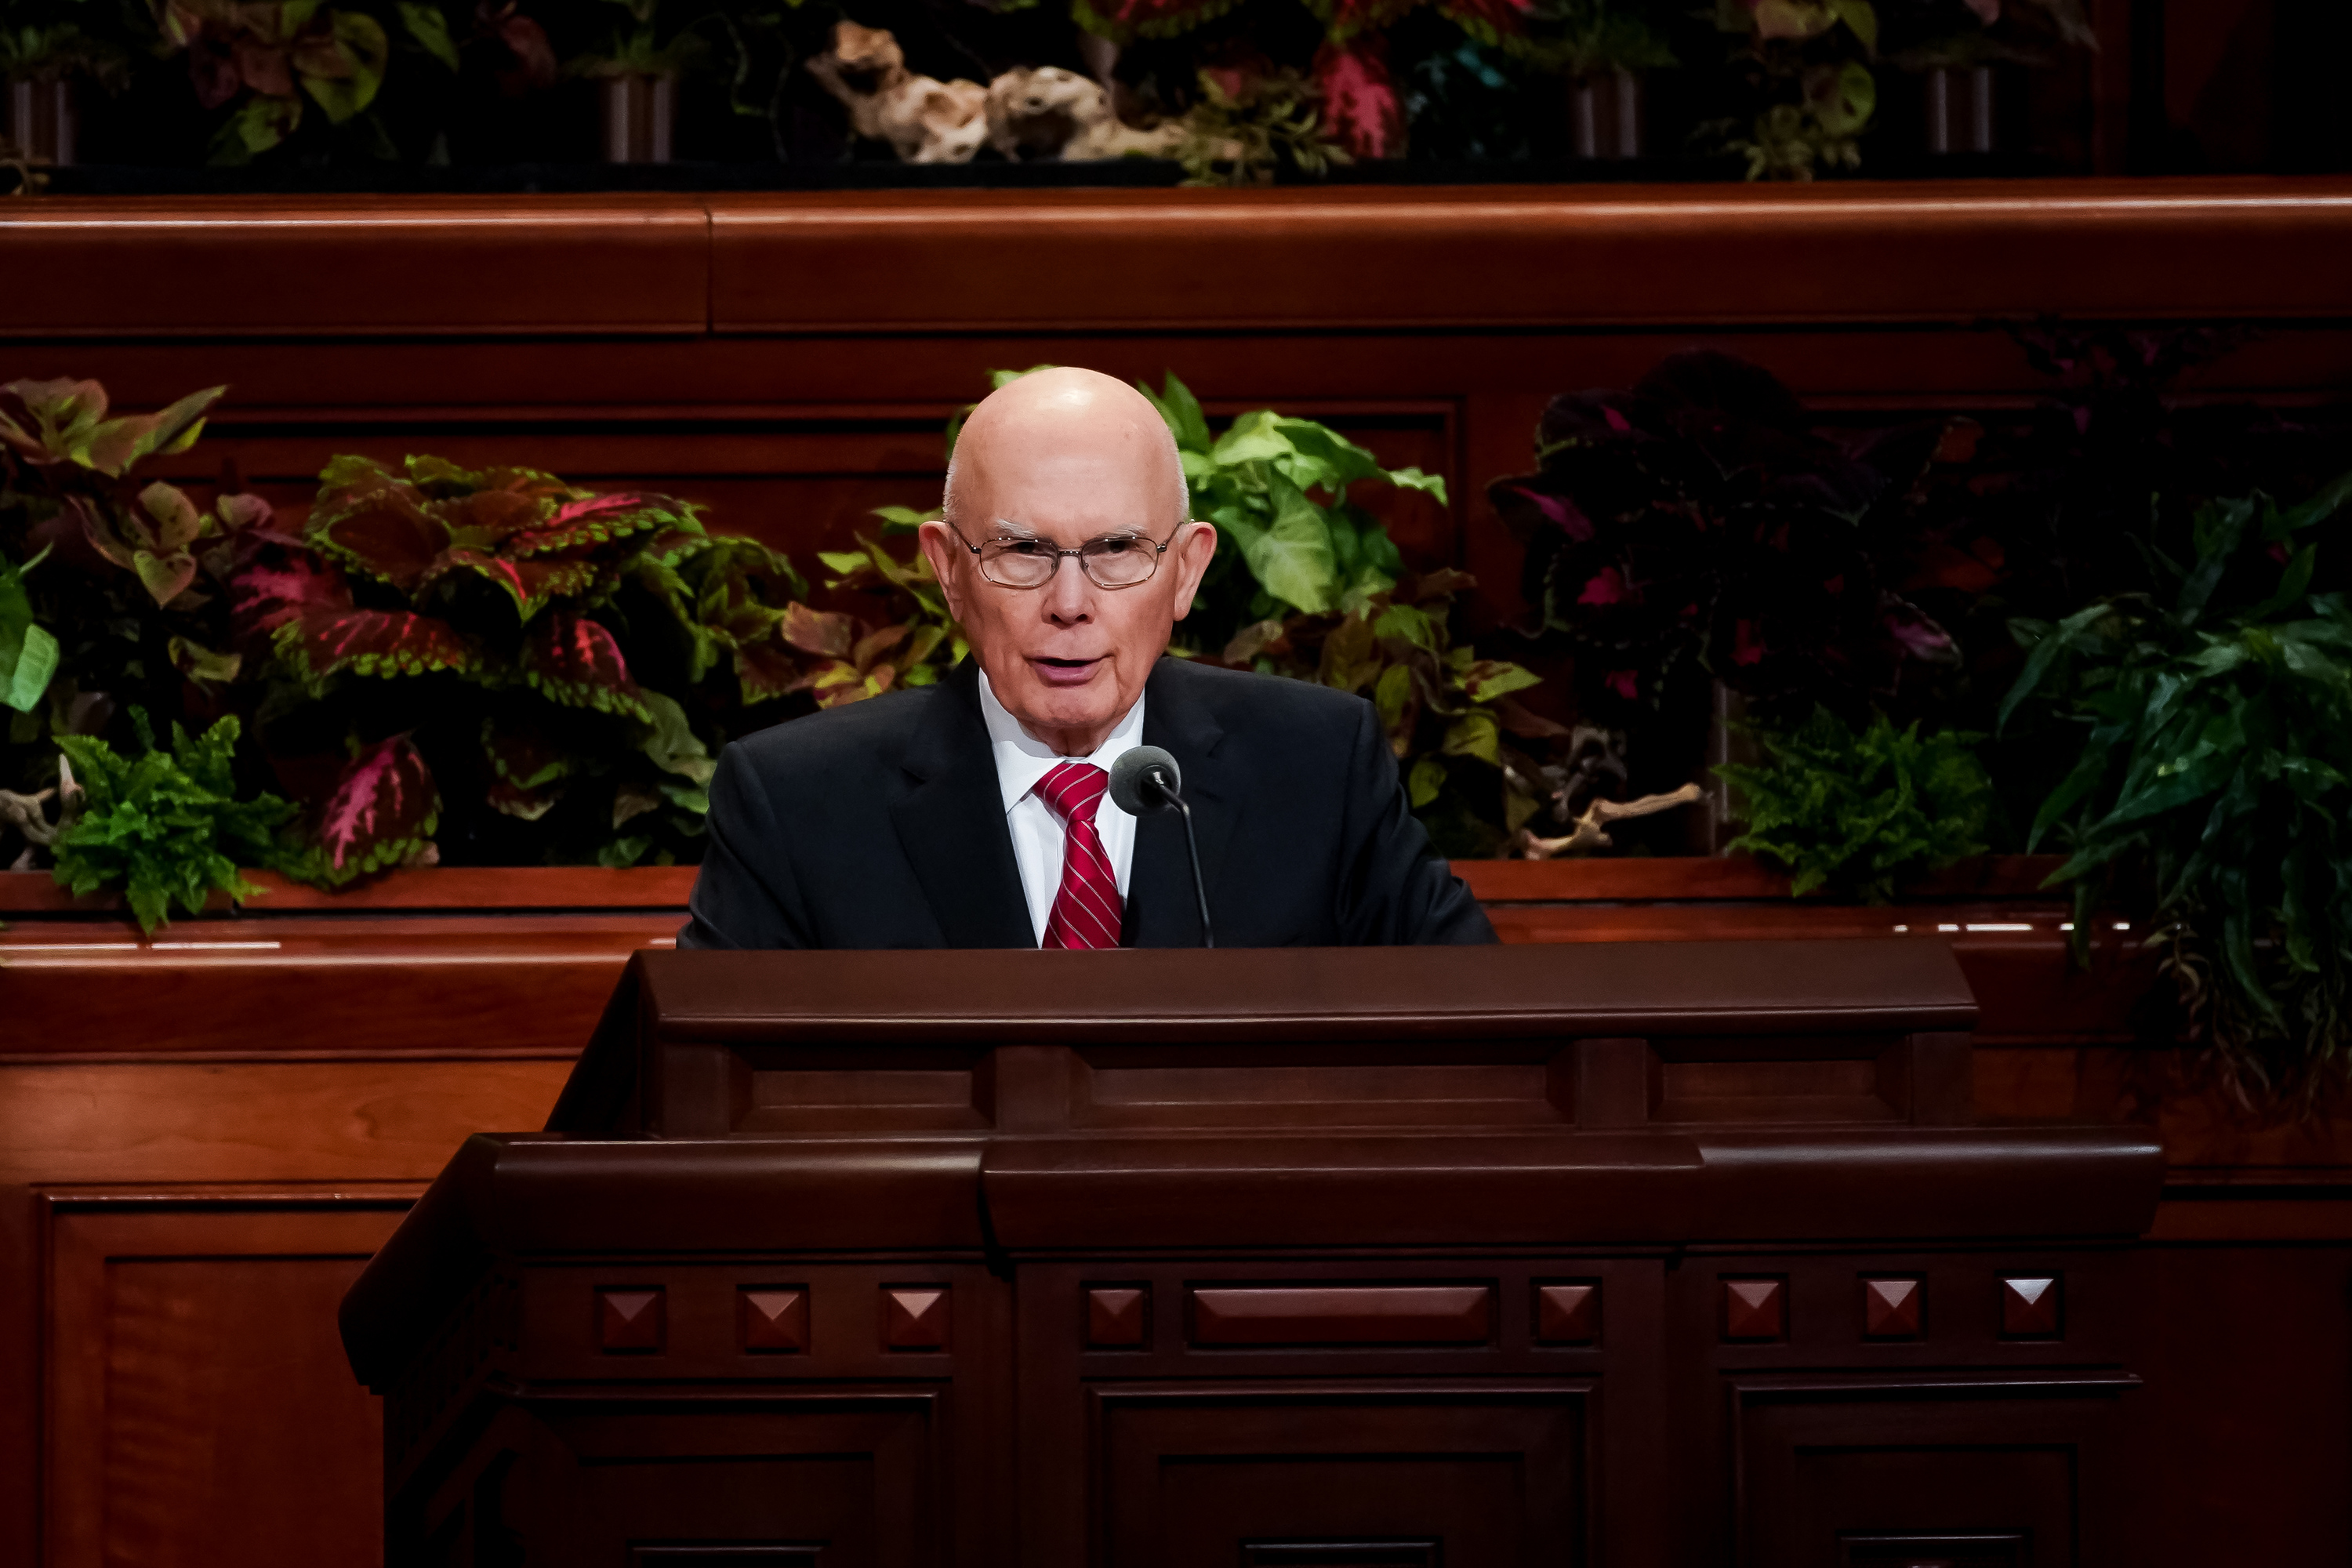 President Dallin H. Oaks, first counselor in the First Presidency, conducts the Saturday afternoon session of the 189th Semiannual General Conference of The Church of Jesus Christ of Latter-day Saints in the Conference Center in Salt Lake City on Saturday, Oct. 5, 2019.